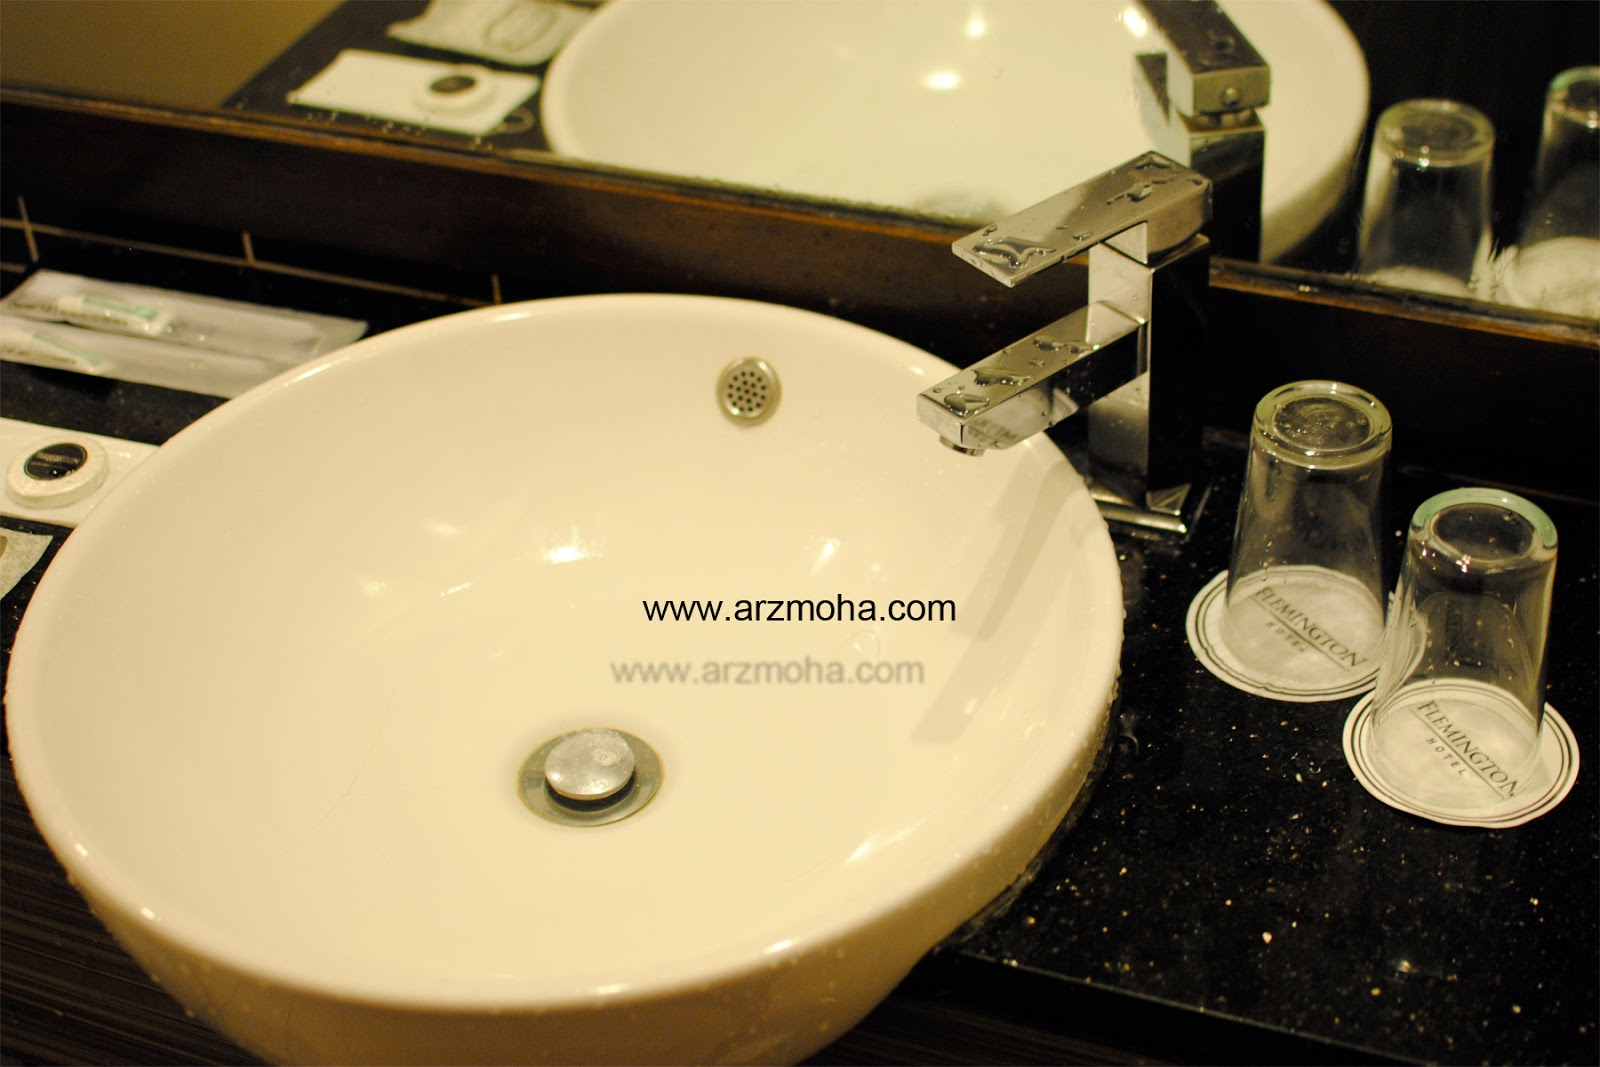 Flemington, bathroom, Hotel, gambar cantik, arzmoha, visit perak, beautiful bathroom